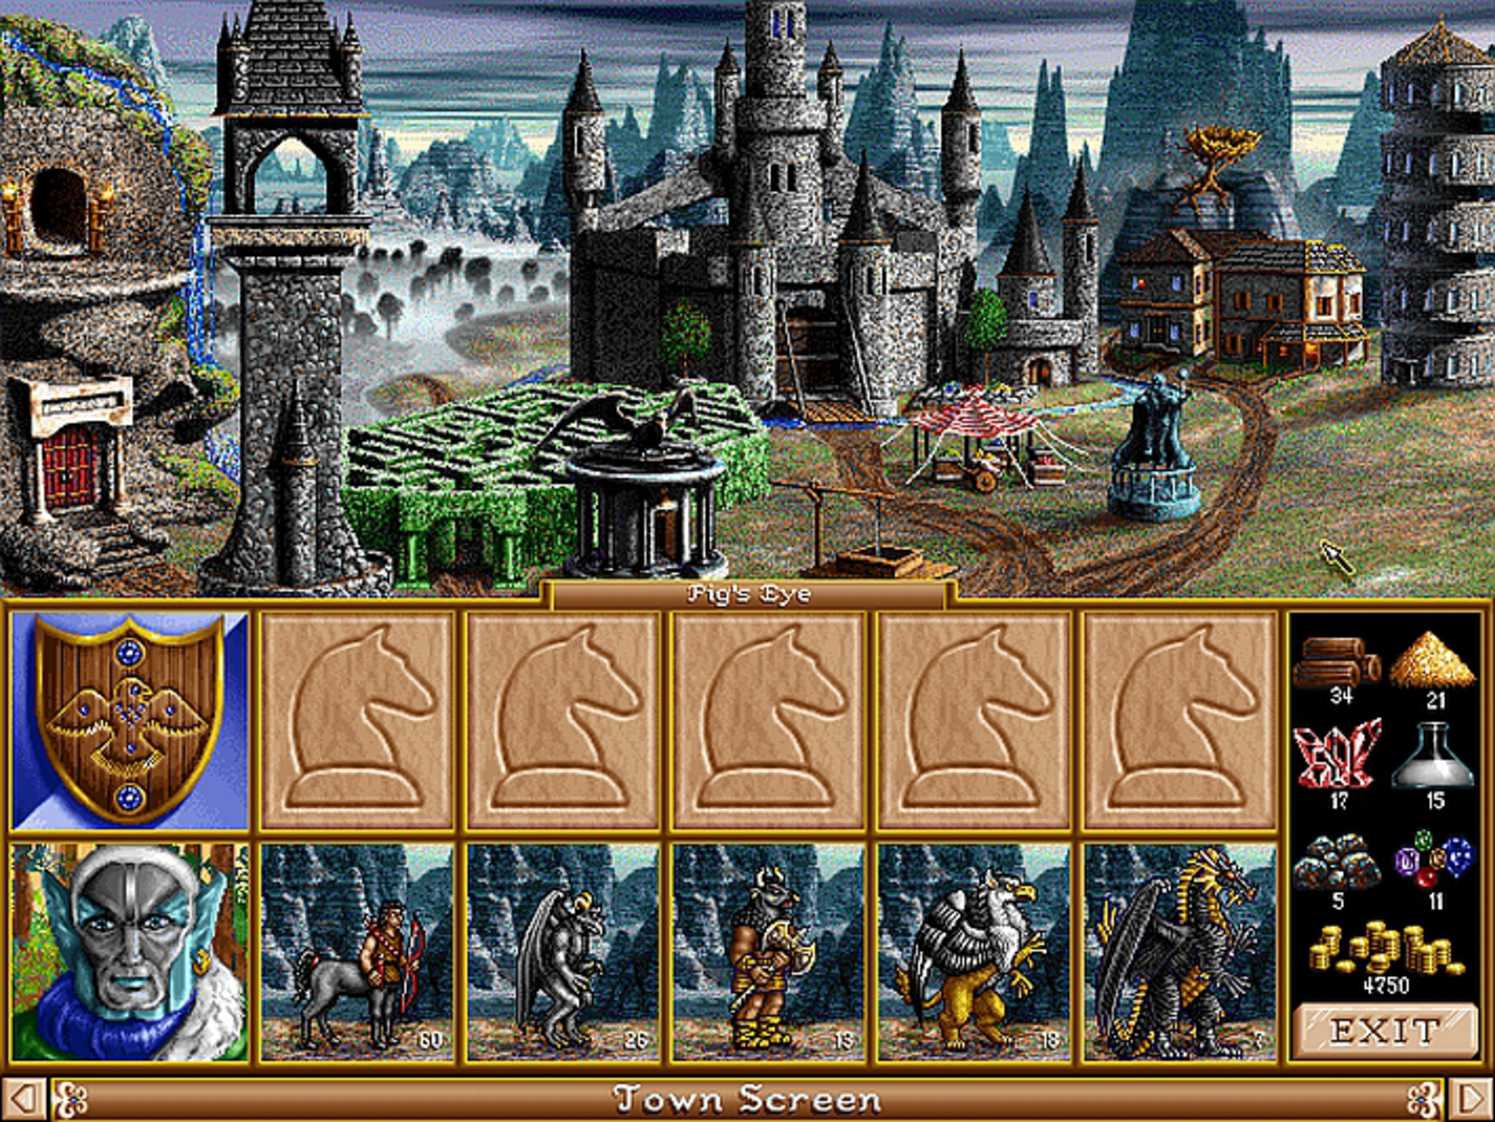 how to play heroes of might and magic 3